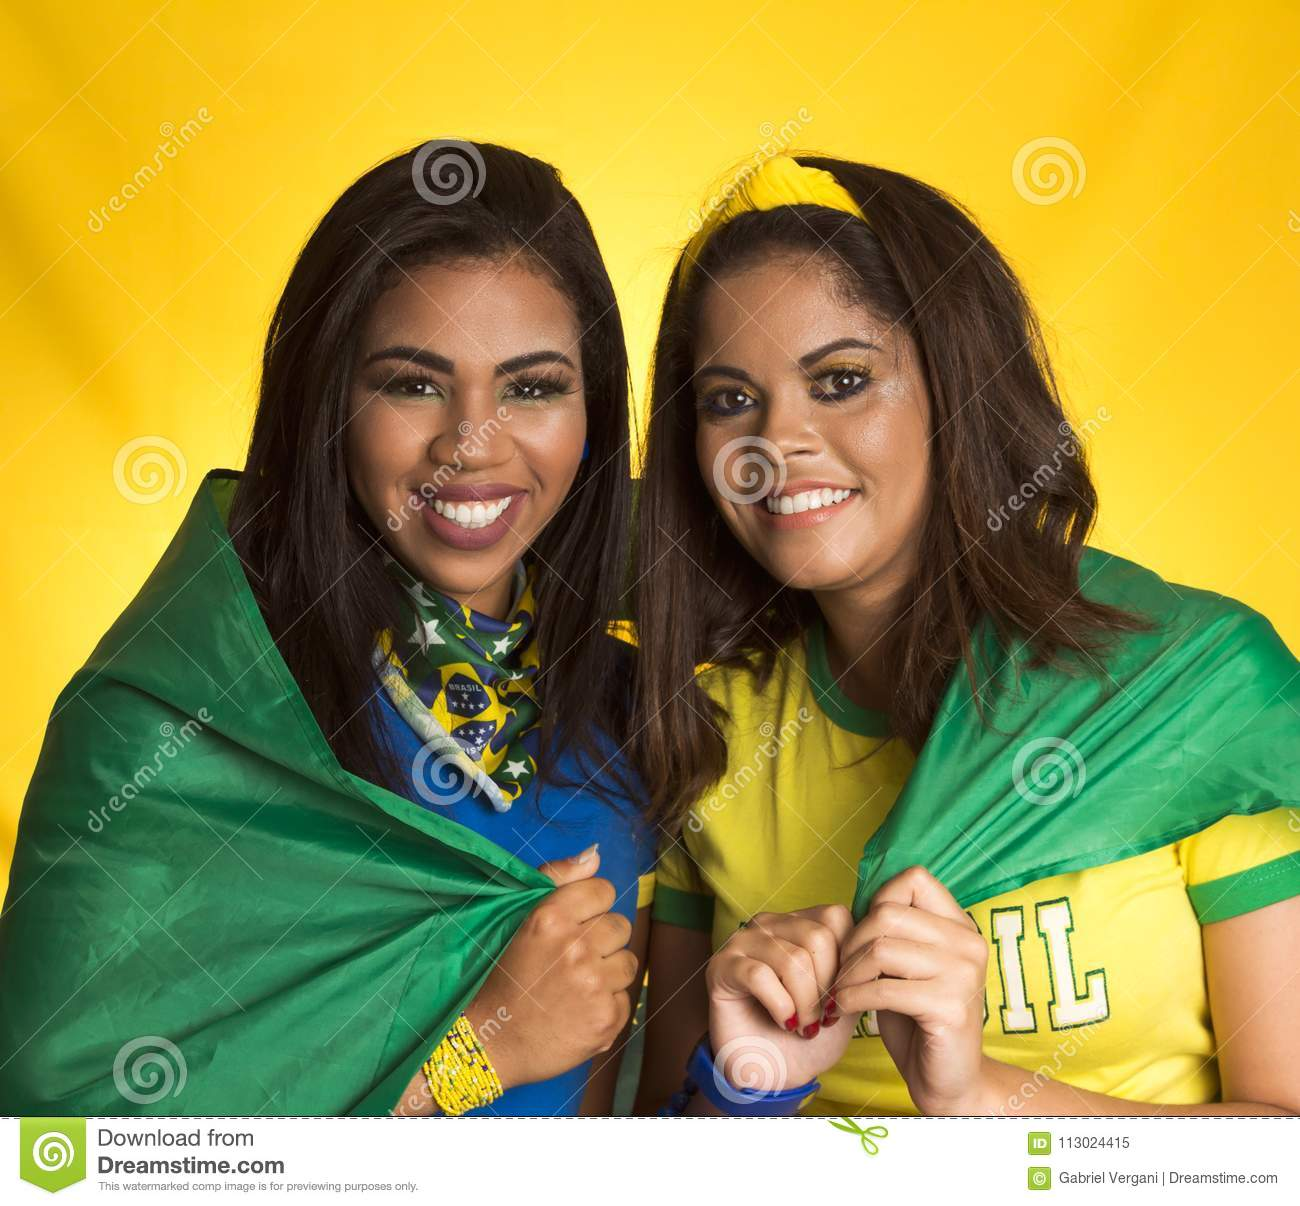 Two brazilian friends celebrating on soccer / football match on